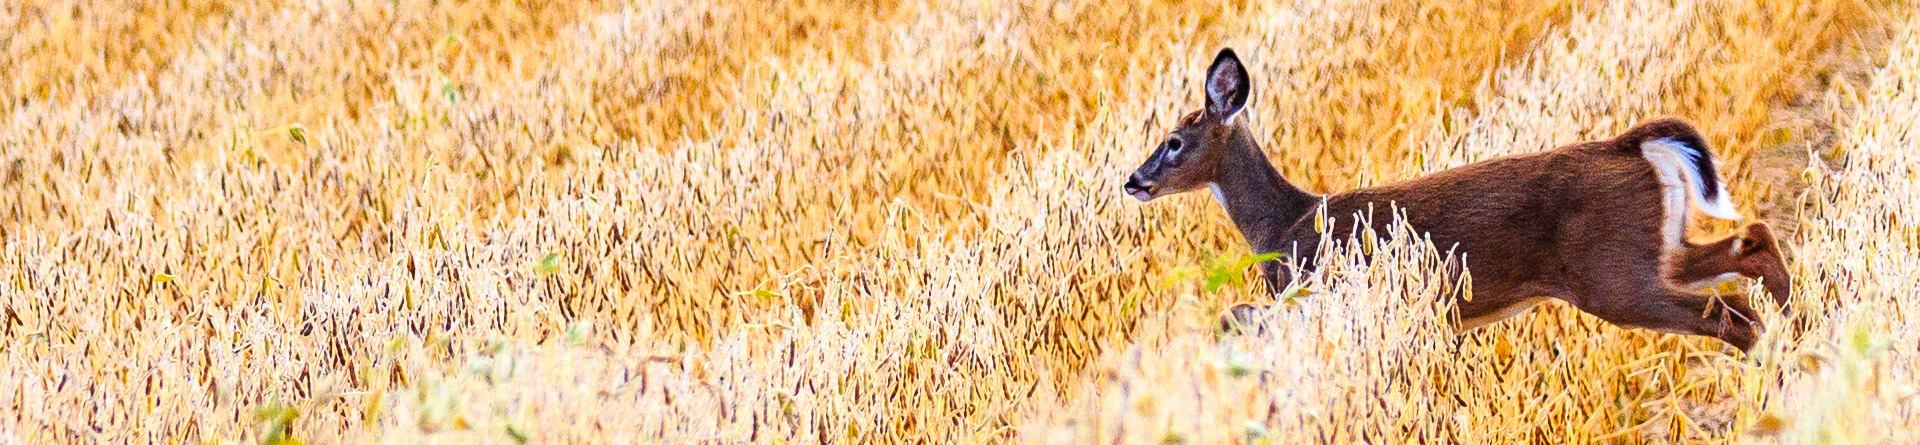 Female deer running through soybean field.